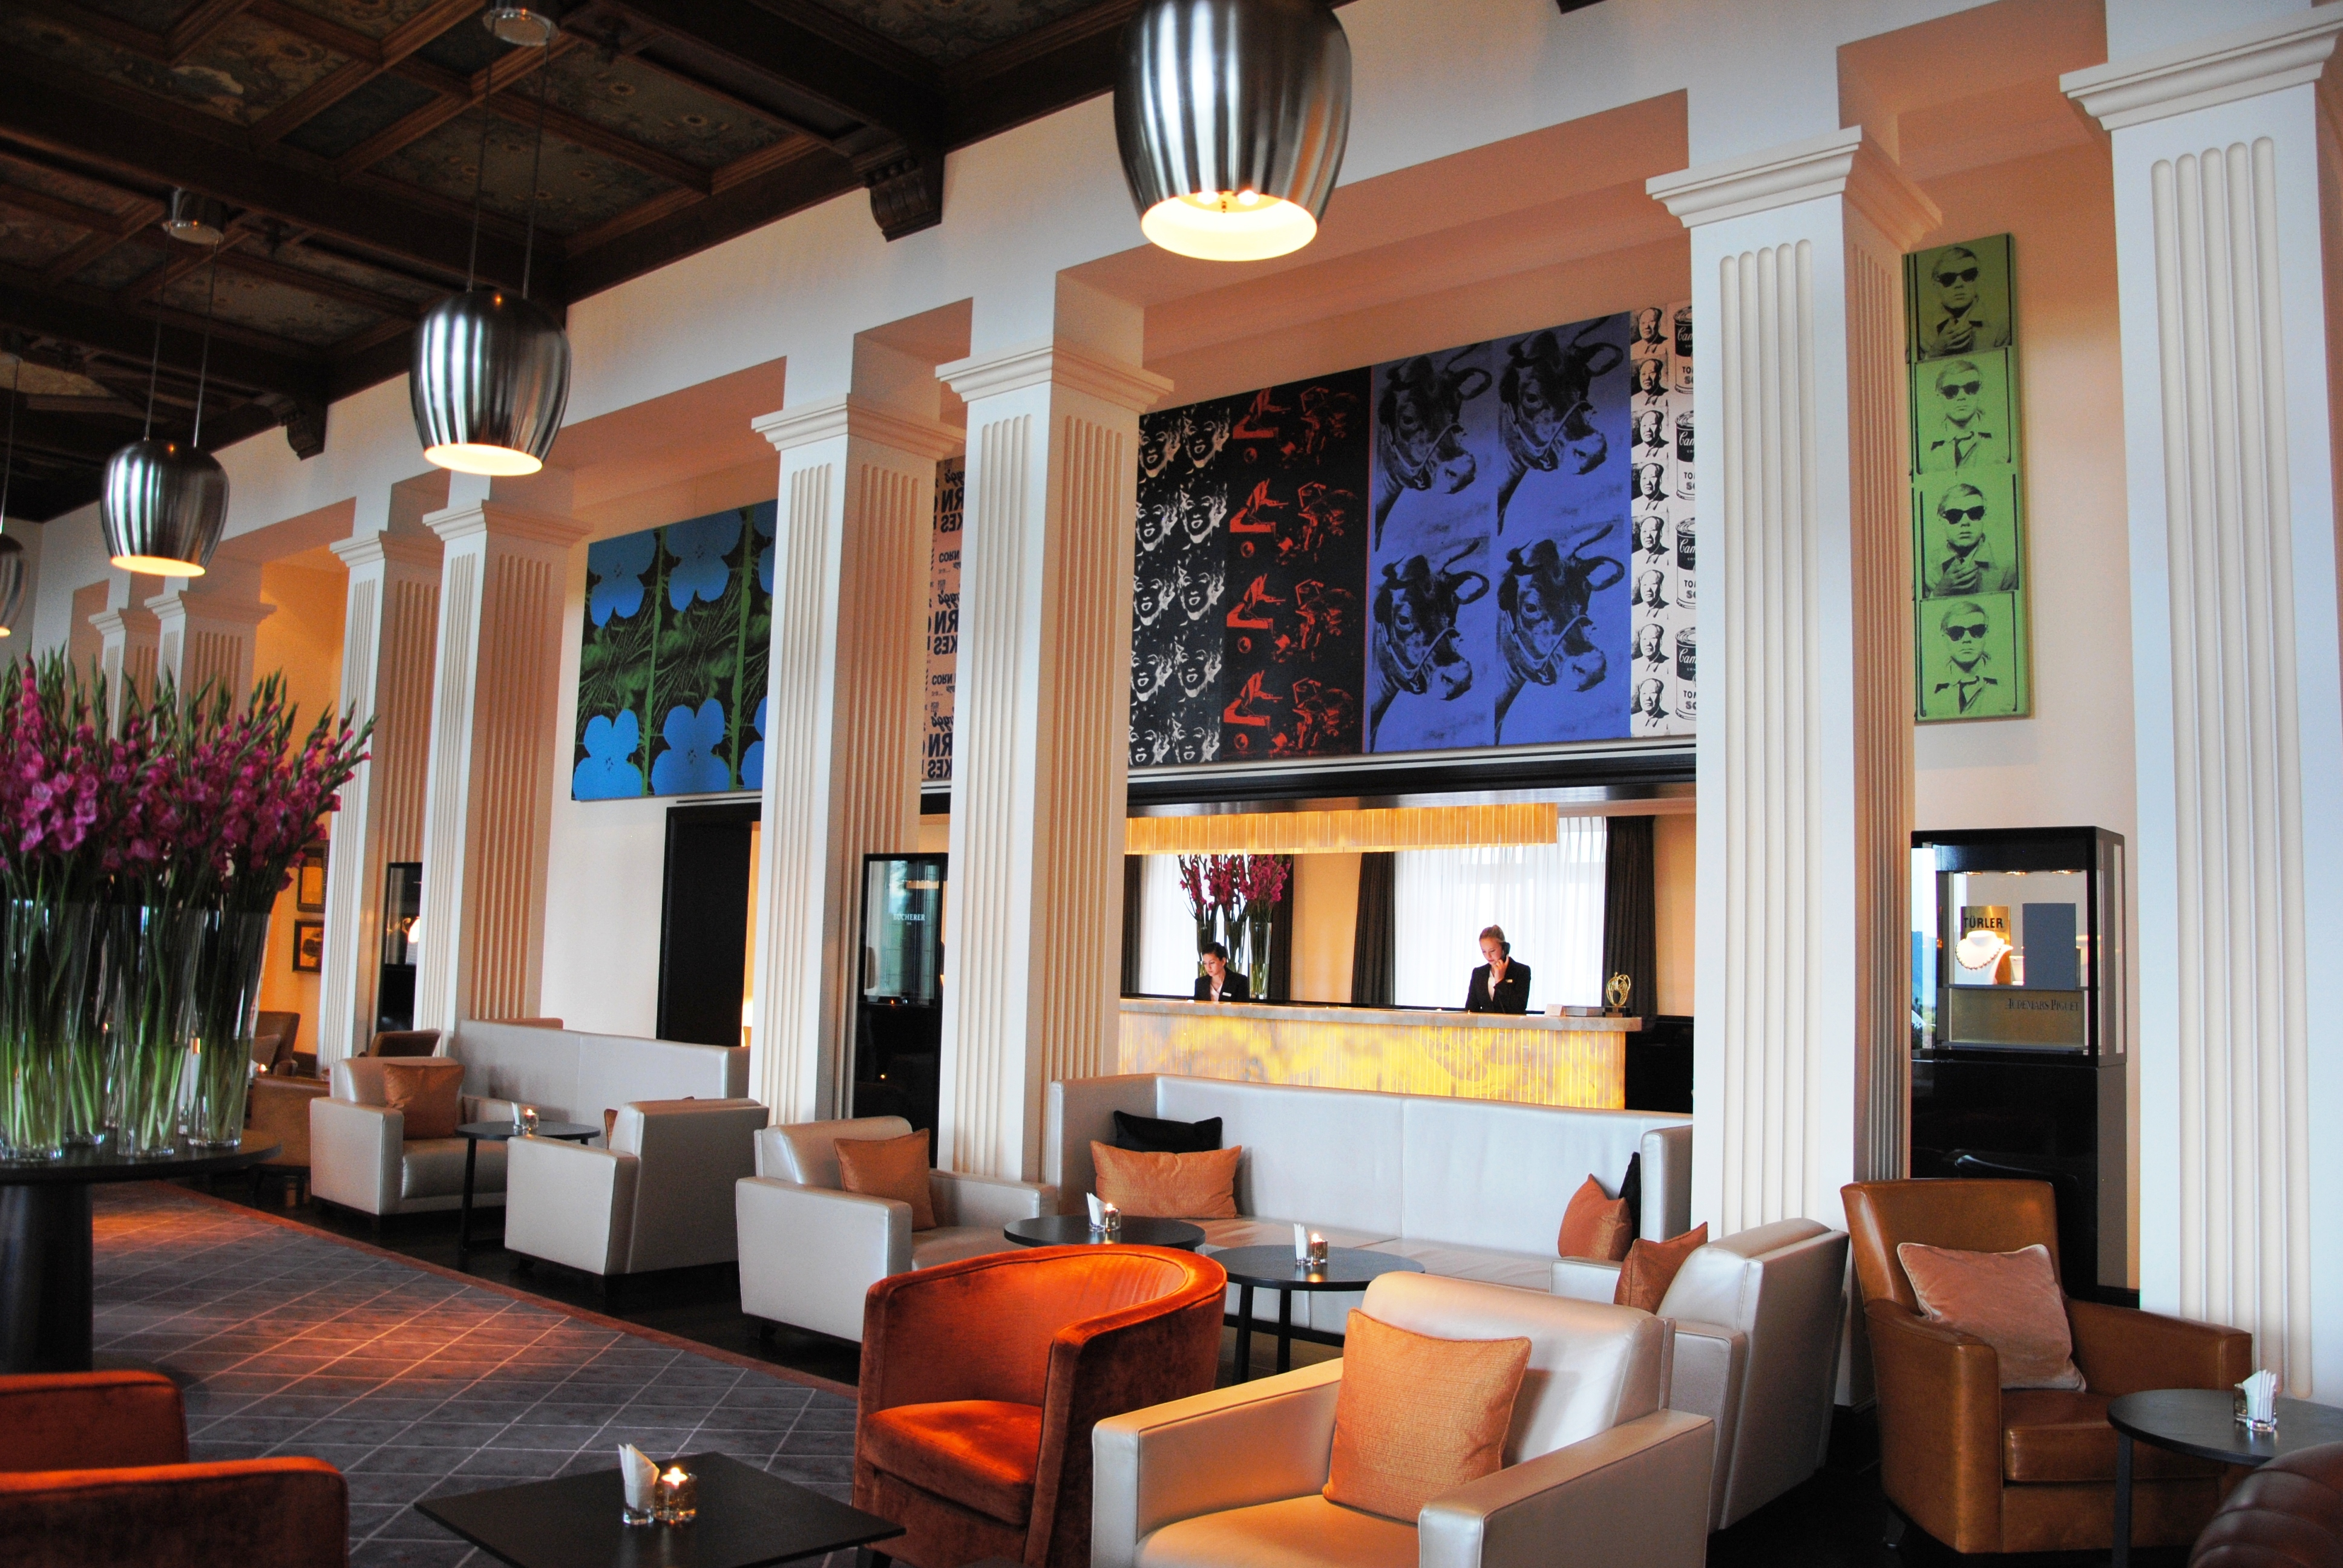 The lobby of The Dolder Grand with a painting by Andy Warhol